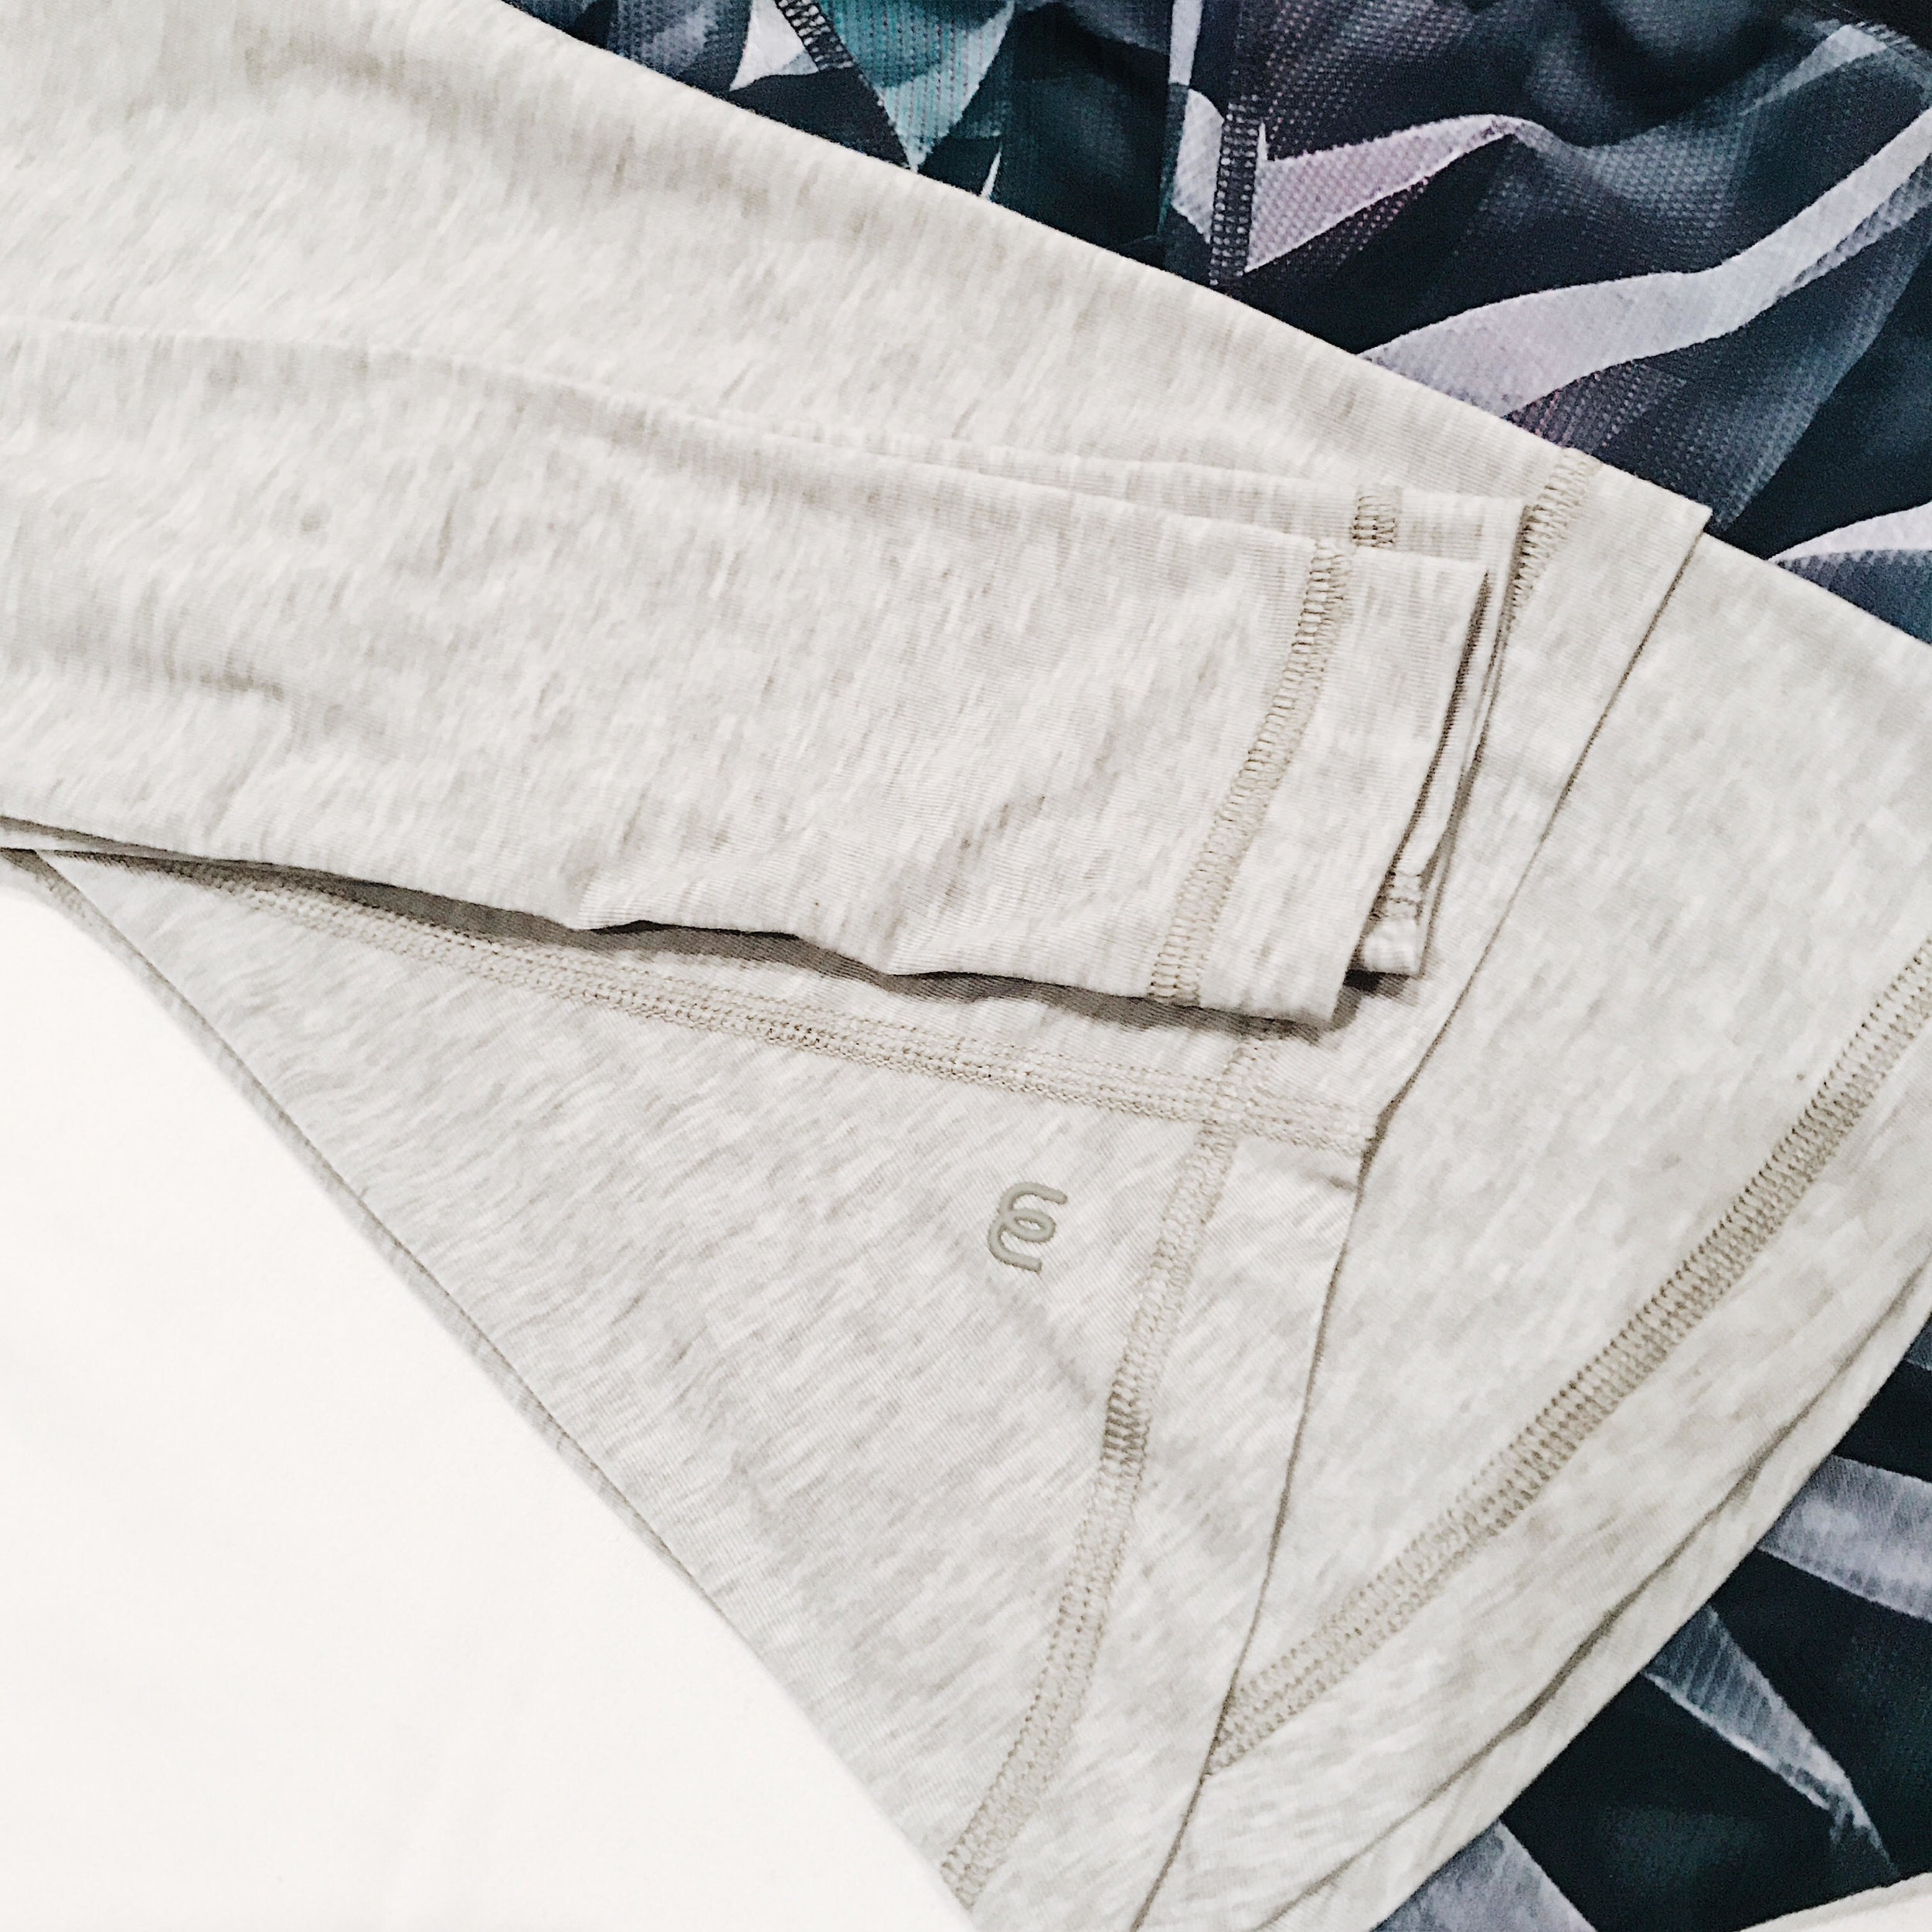 Medelita Core One Tee Review Underscrubs